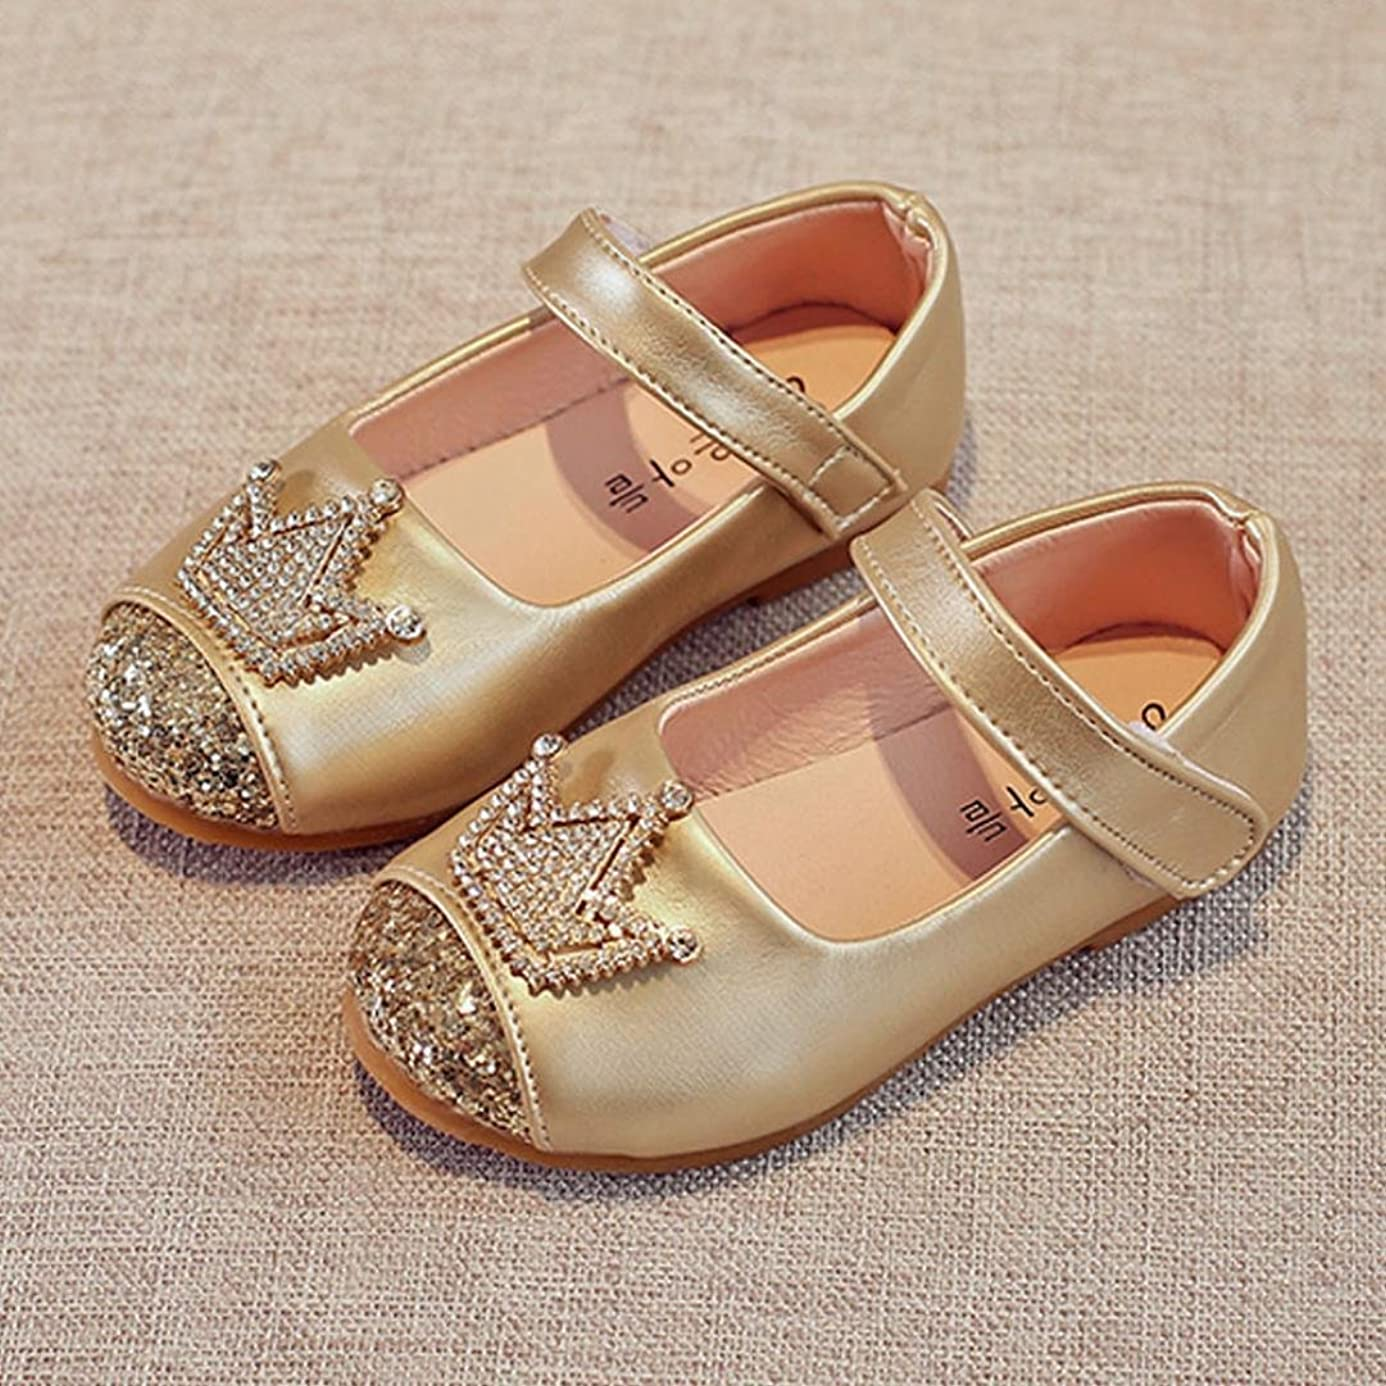 WensLTD Princess Girls' Infant Shiny Crown Flat Shoes Casual Mary Jane